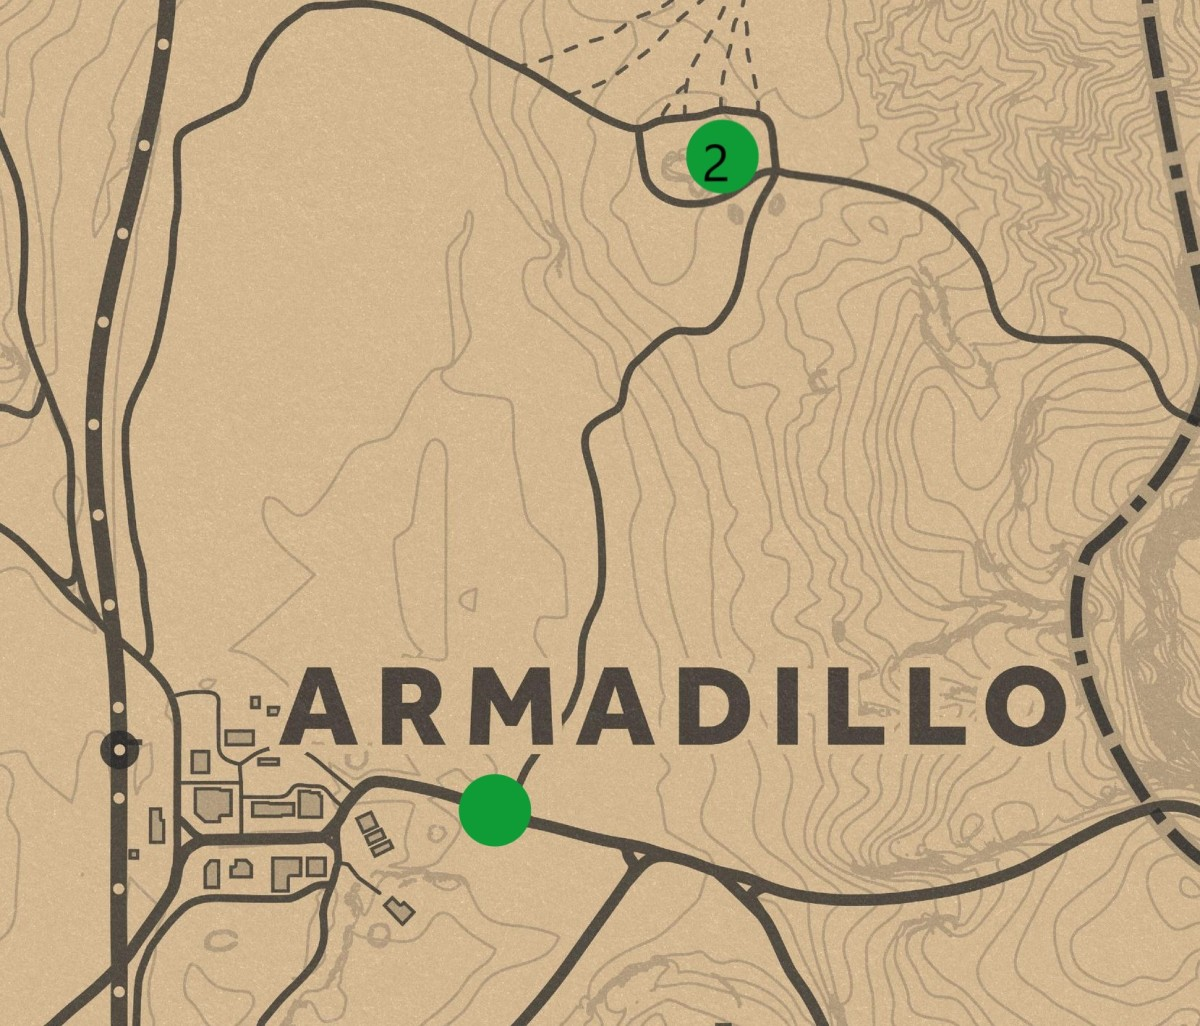 The lower green dot is the sign post leading to Armadillo. Hanging Rock is represented by the upper green dot.